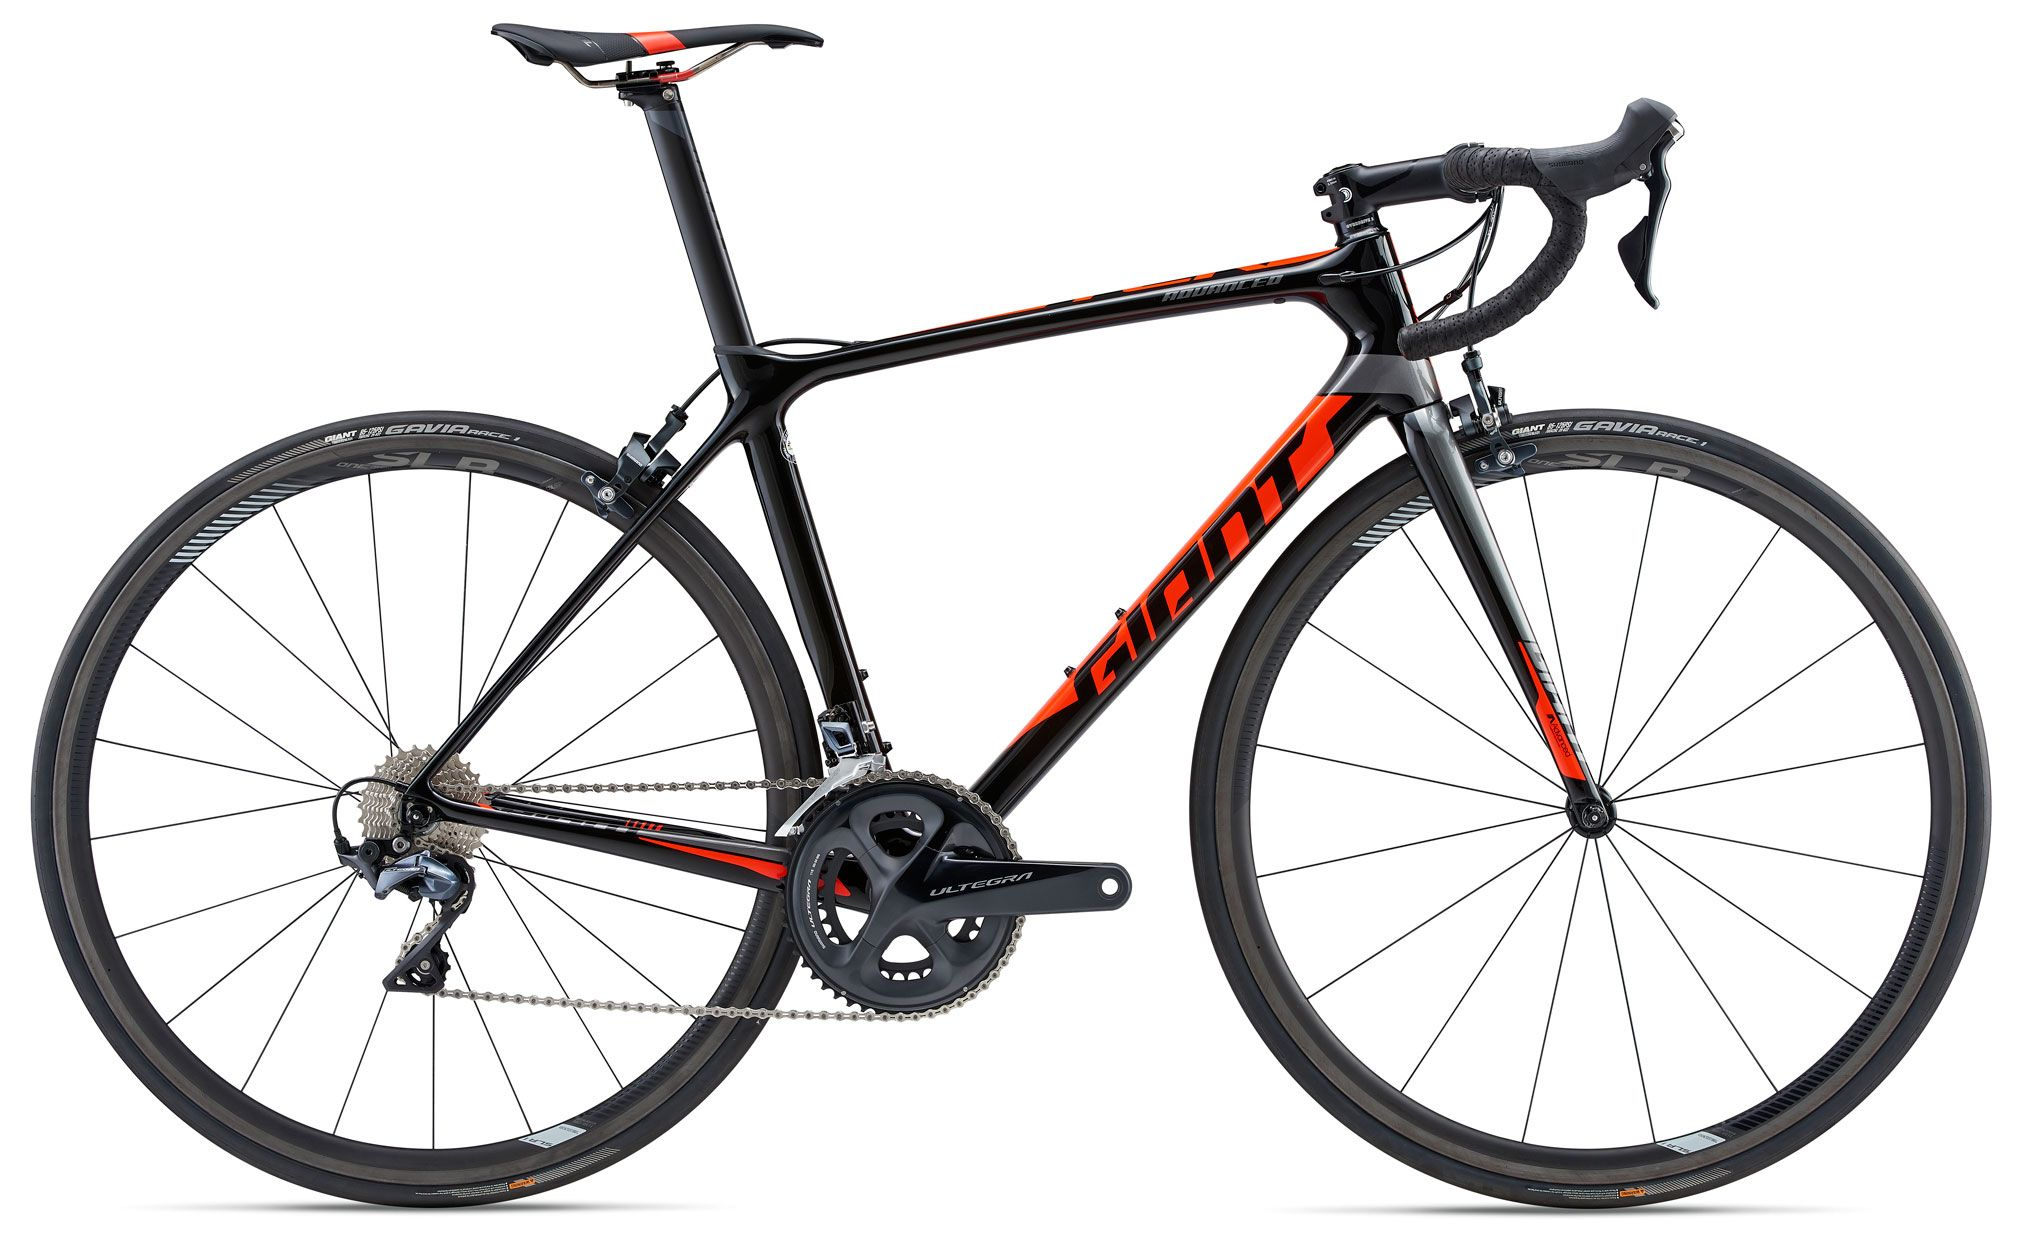 Велосипед Giant TCR Advanced Pro 1 2018 велосипед giant tcr advanced sl 2 2017